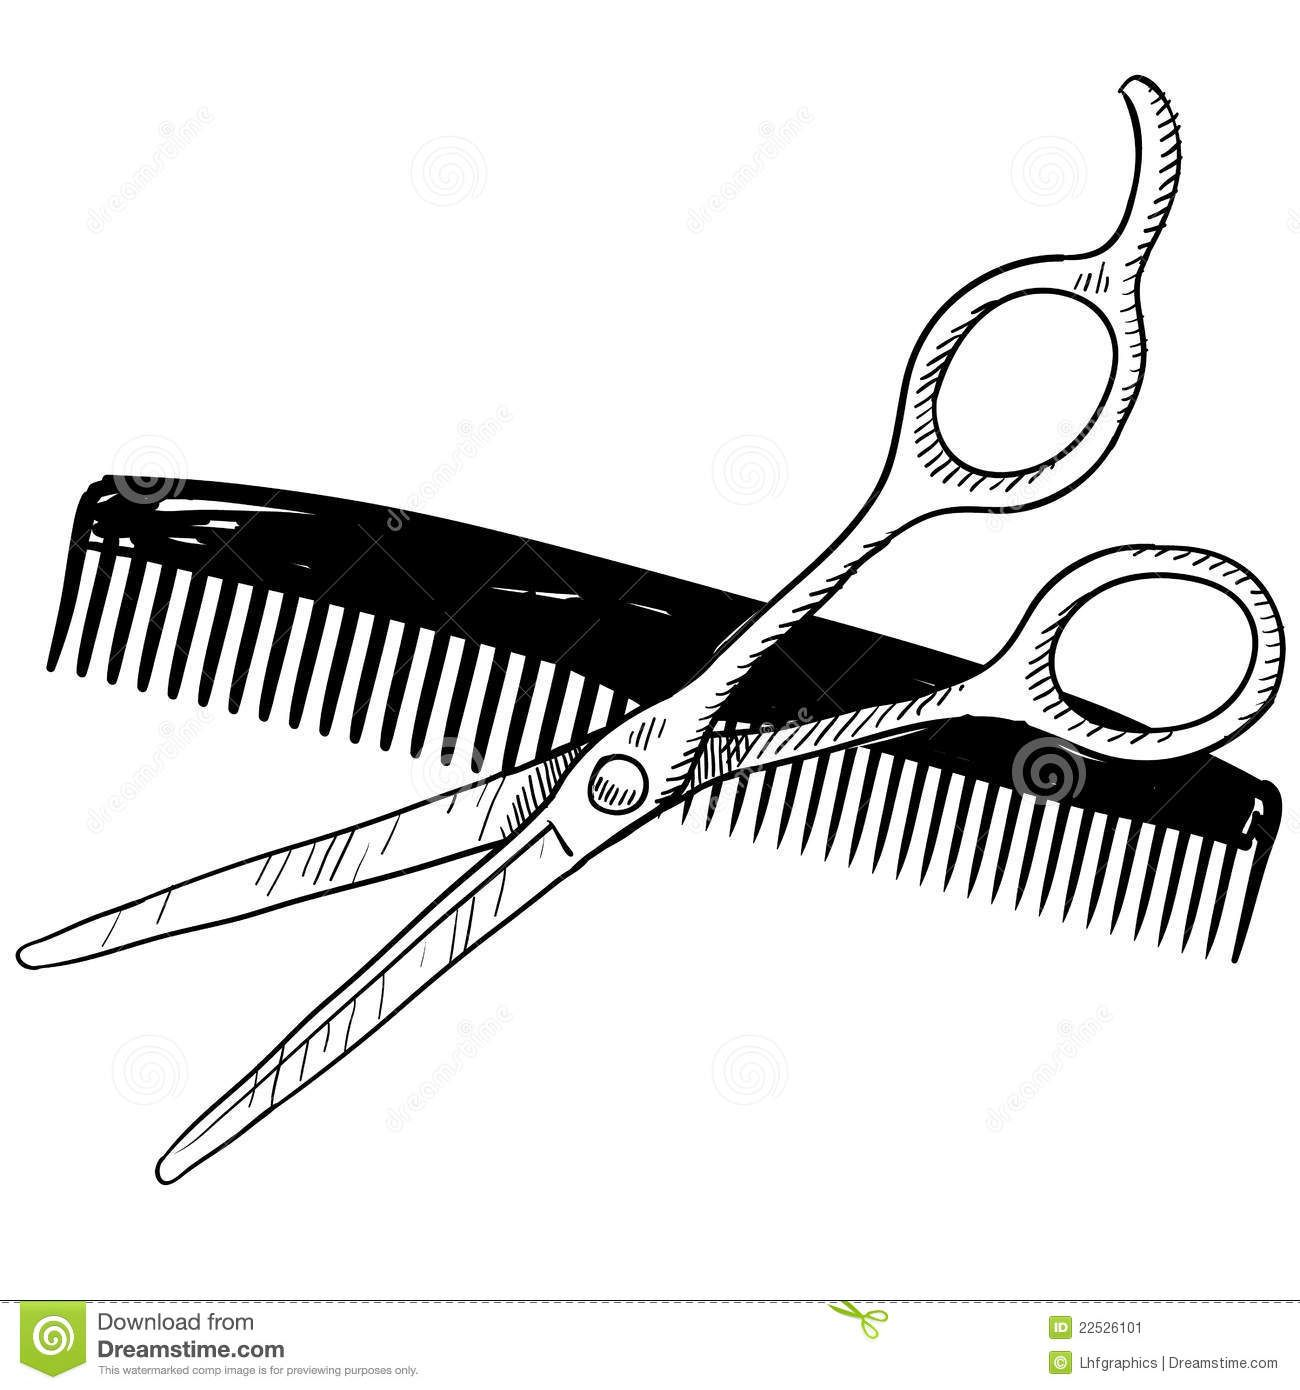 Images For > Barber Comb Clip Art.